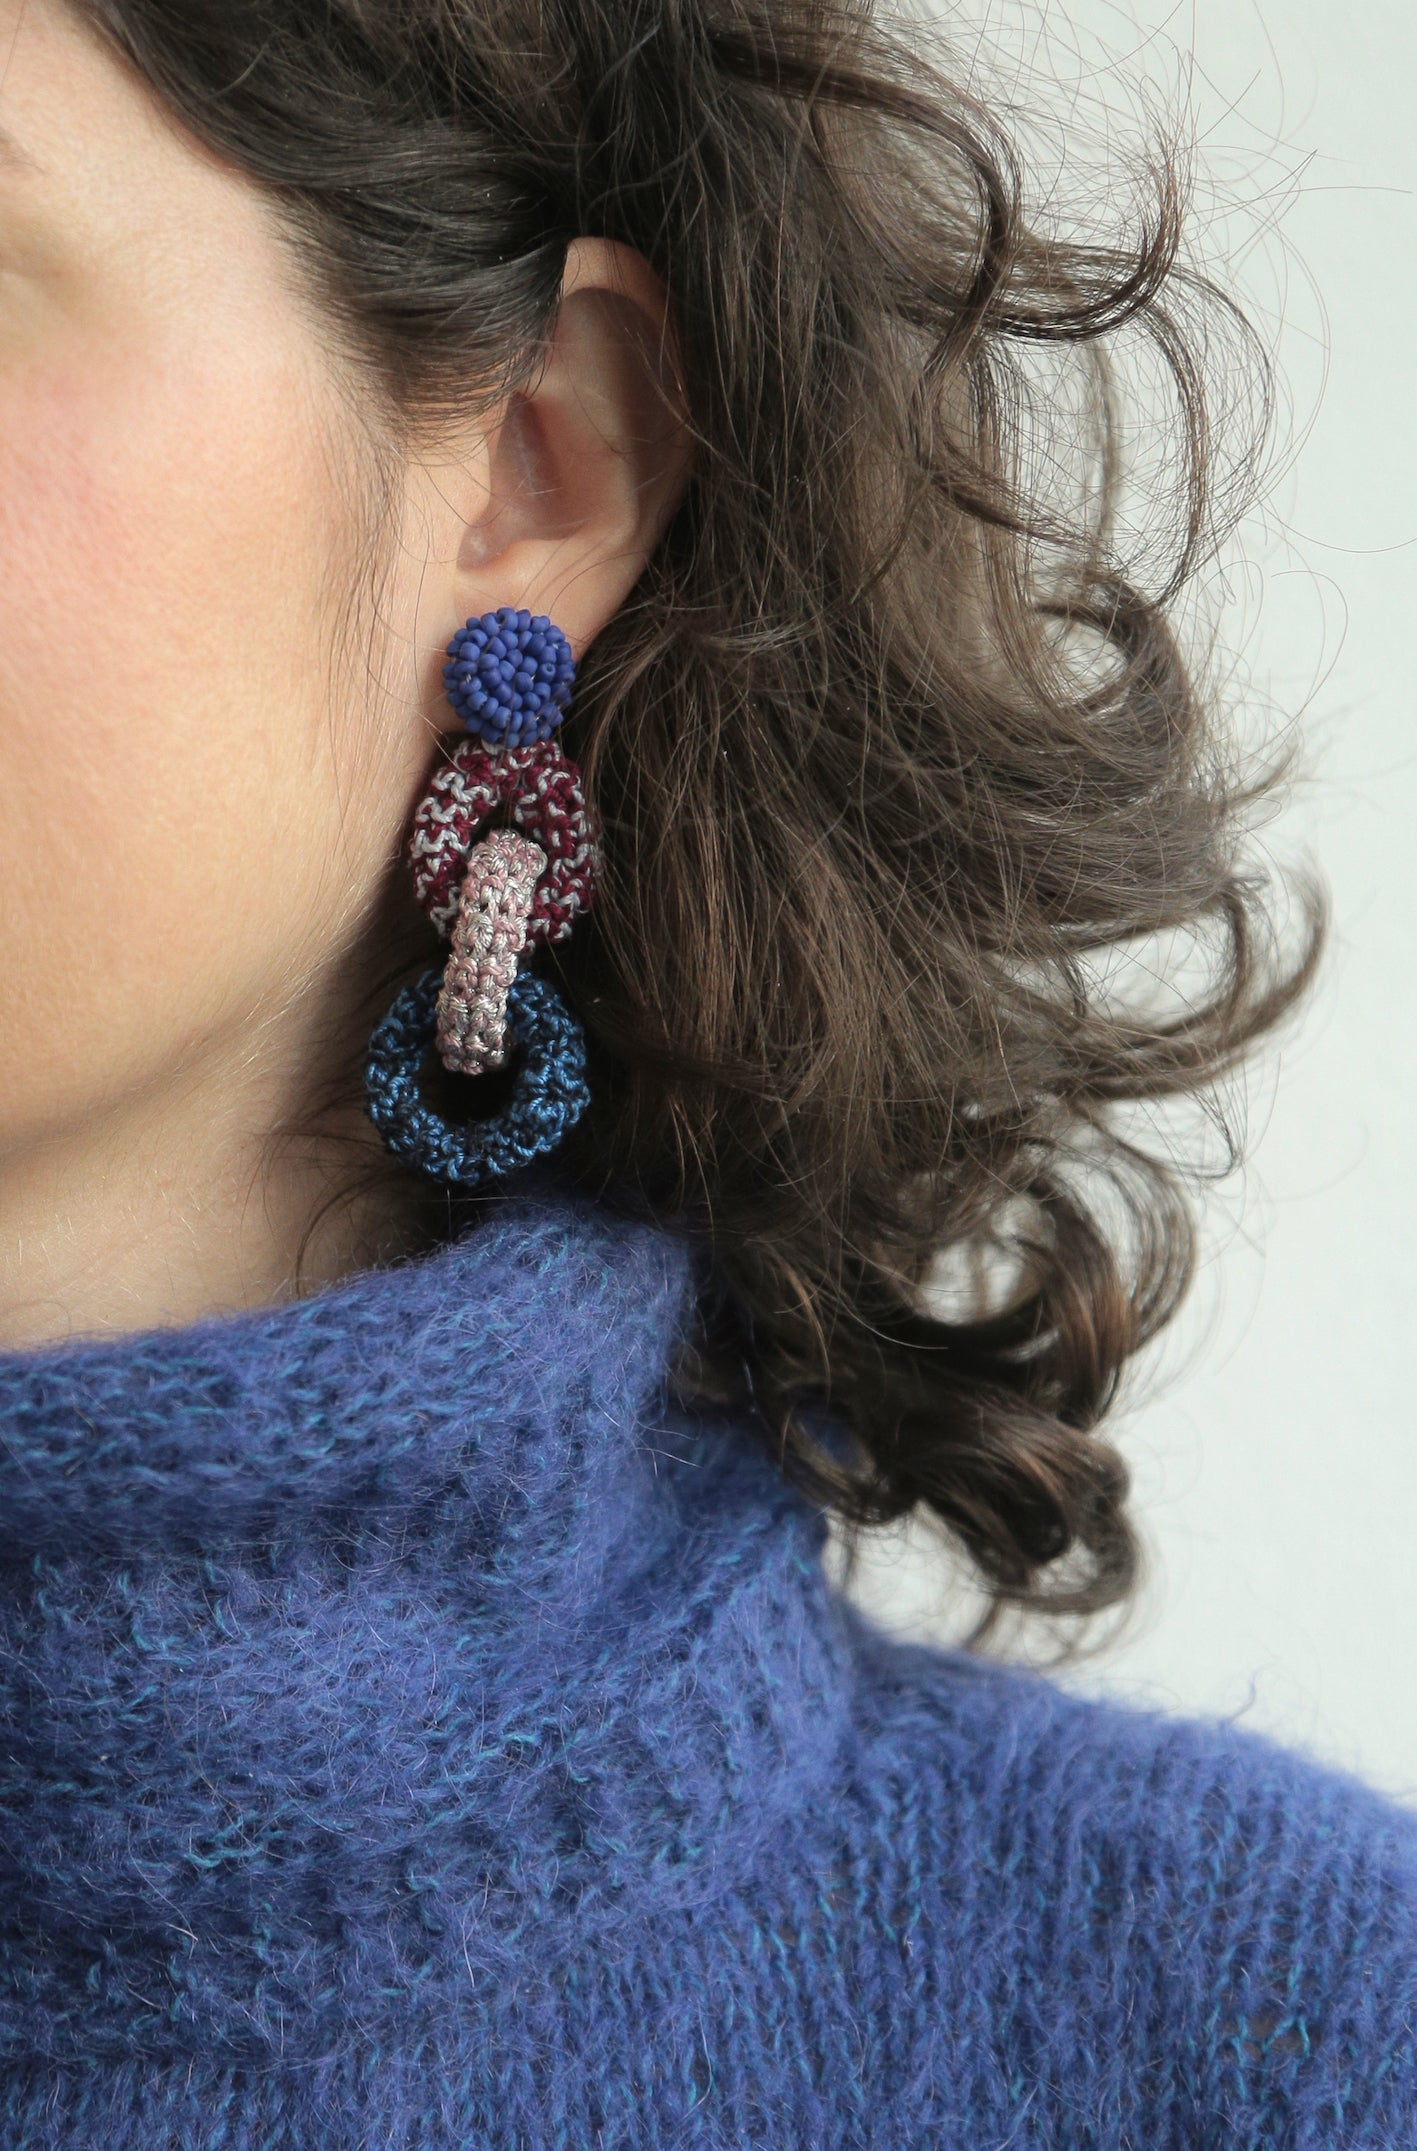 Image of Glowing Blue Bonded Together earrings